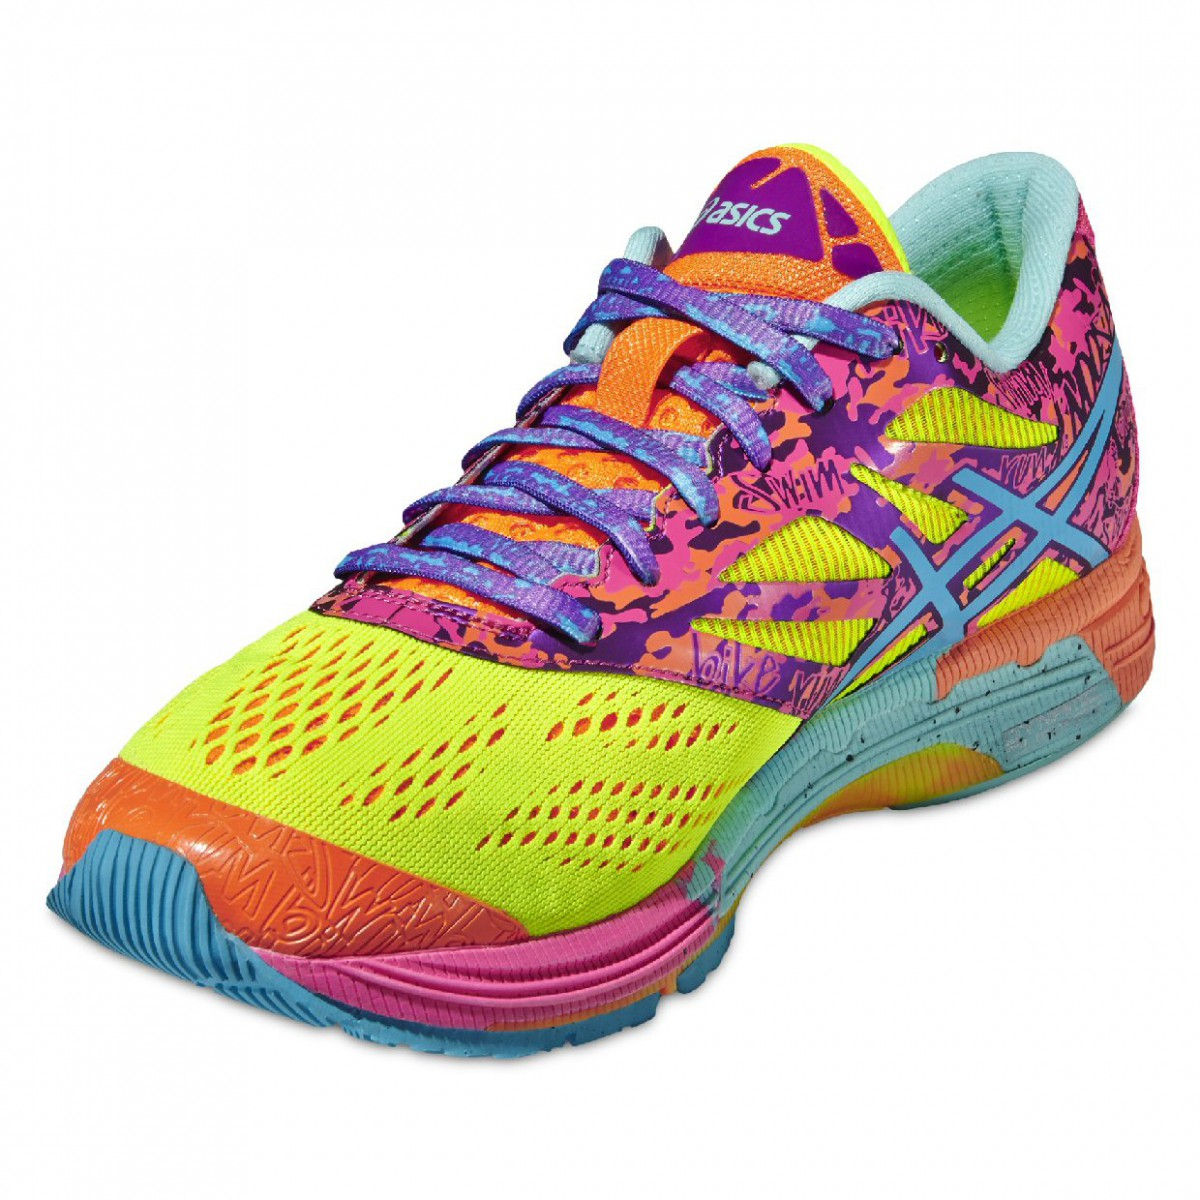 Buy asics gel noosa tri 10 mens 2014 > Up to OFF61% Discounted